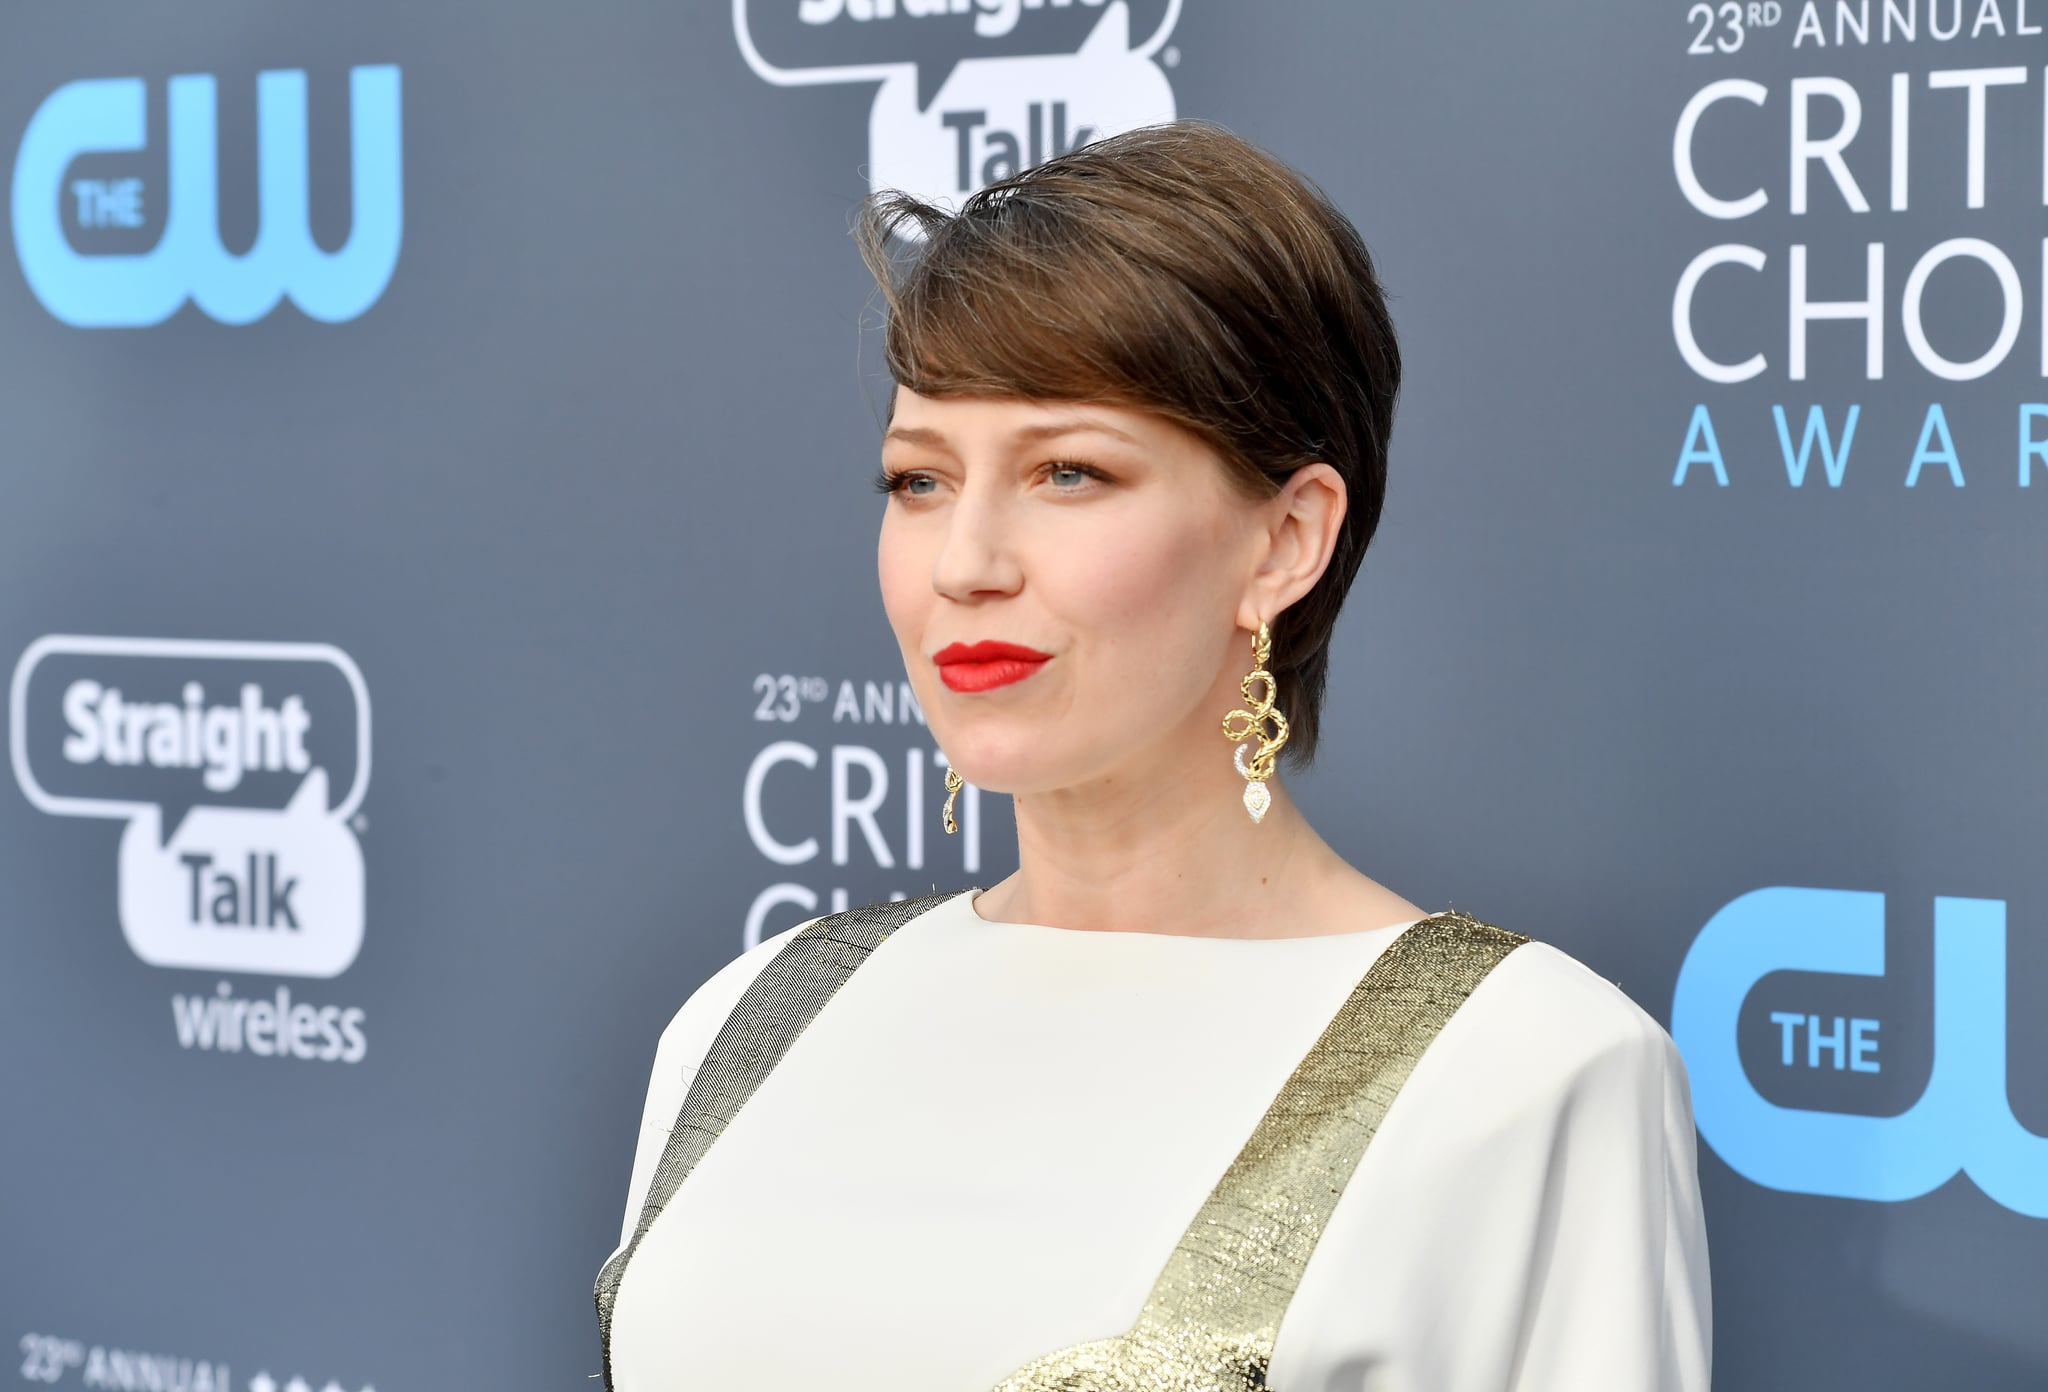 SANTA MONICA, CA - JANUARY 11:  Actor Carrie Coon attends The 23rd Annual Critics' Choice Awards at Barker Hangar on January 11, 2018 in Santa Monica, California.  (Photo by Jeff Kravitz/FilmMagic)